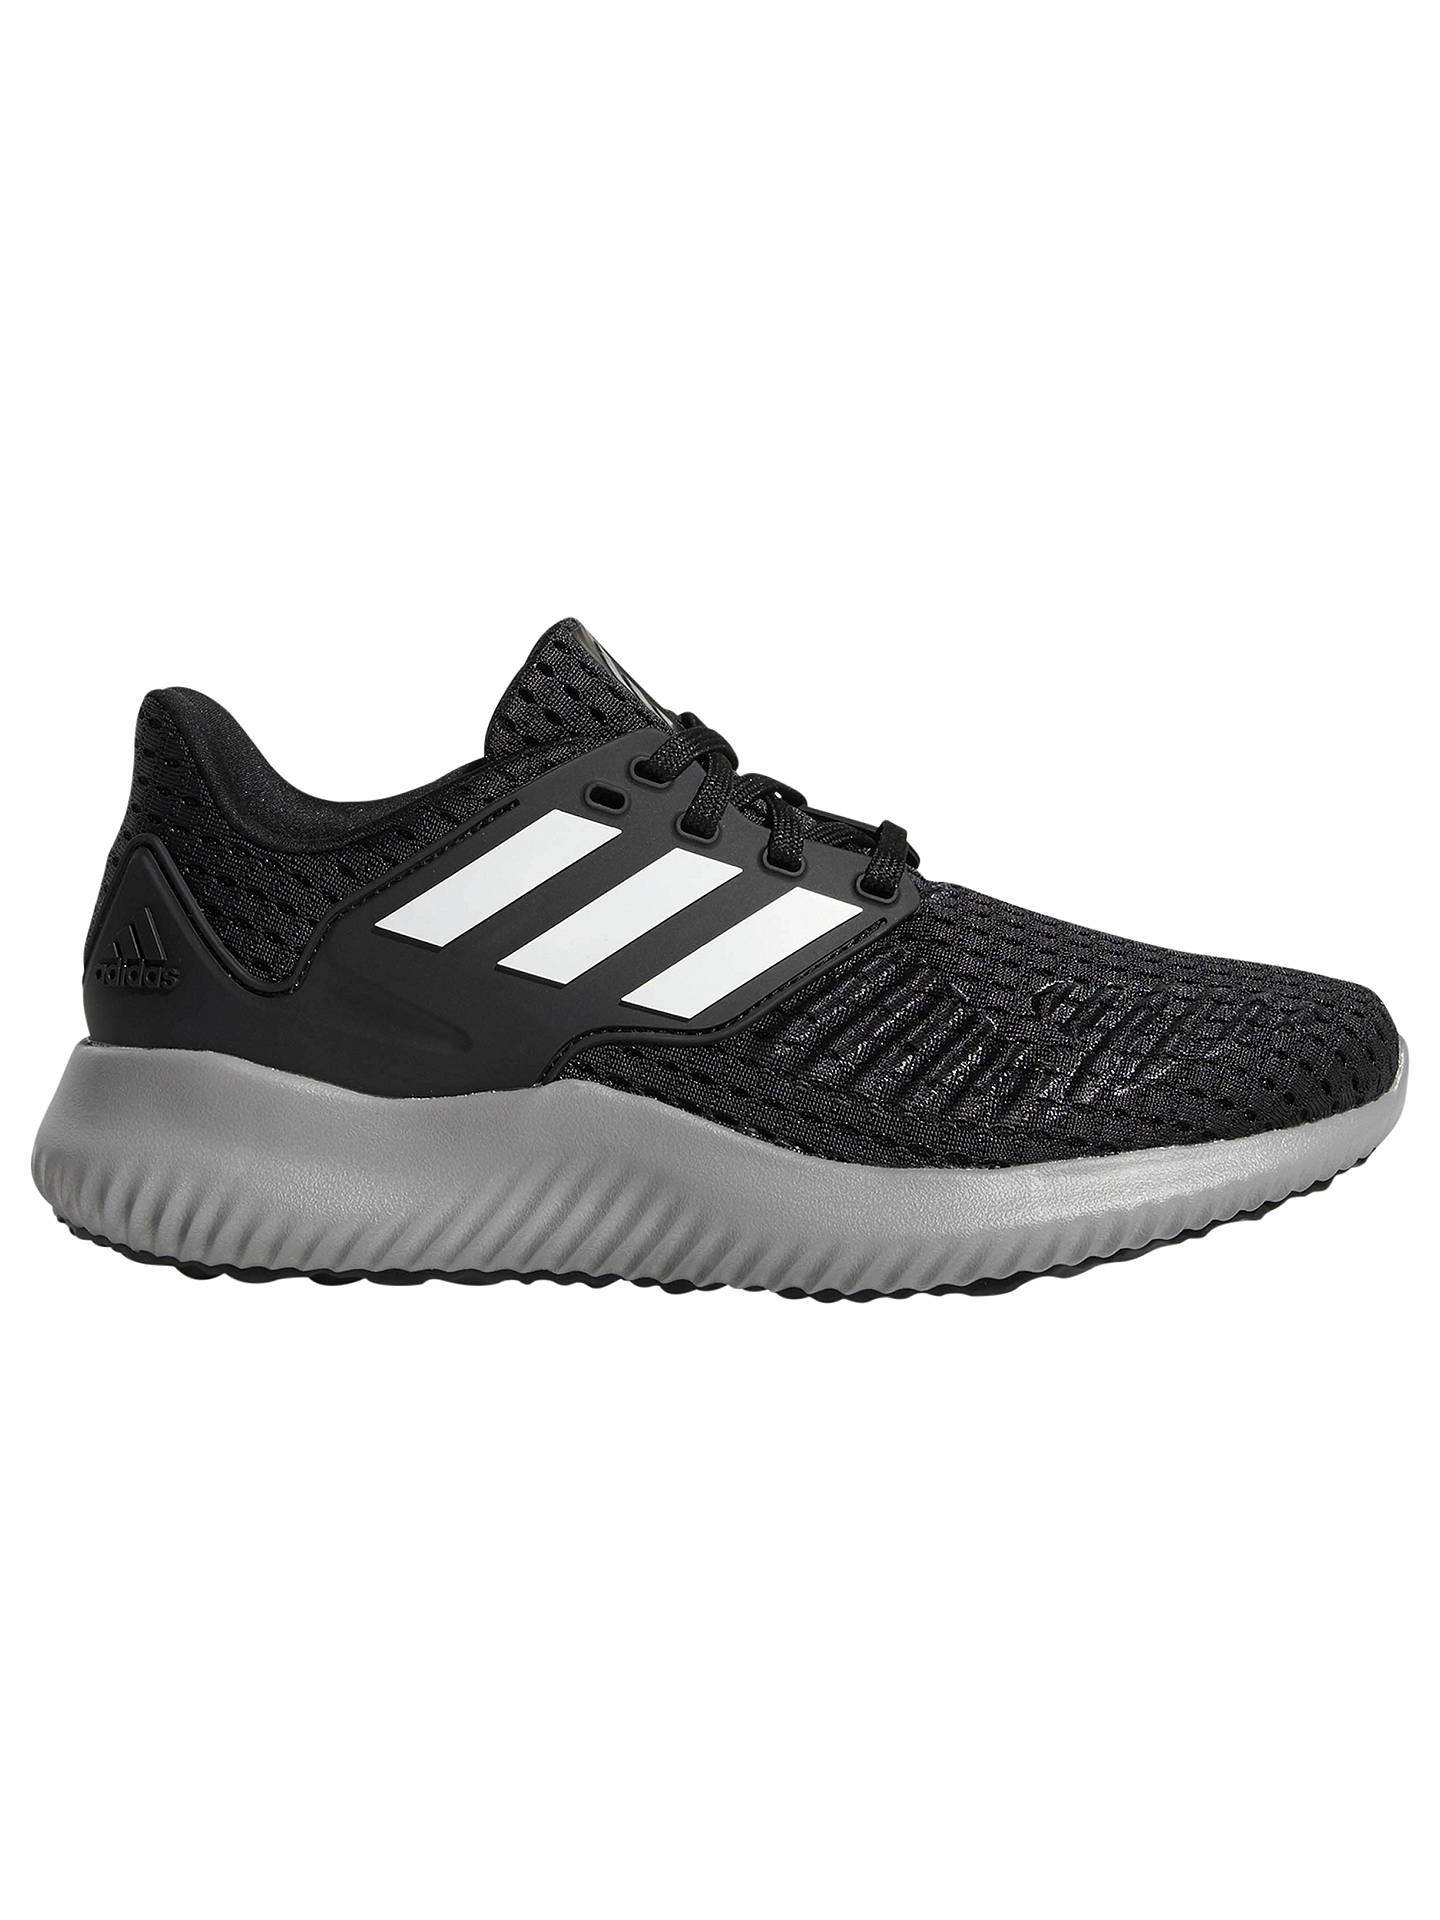 22aa7469d Buy adidas Alphabounce RC 2.0 Women s Running Shoes